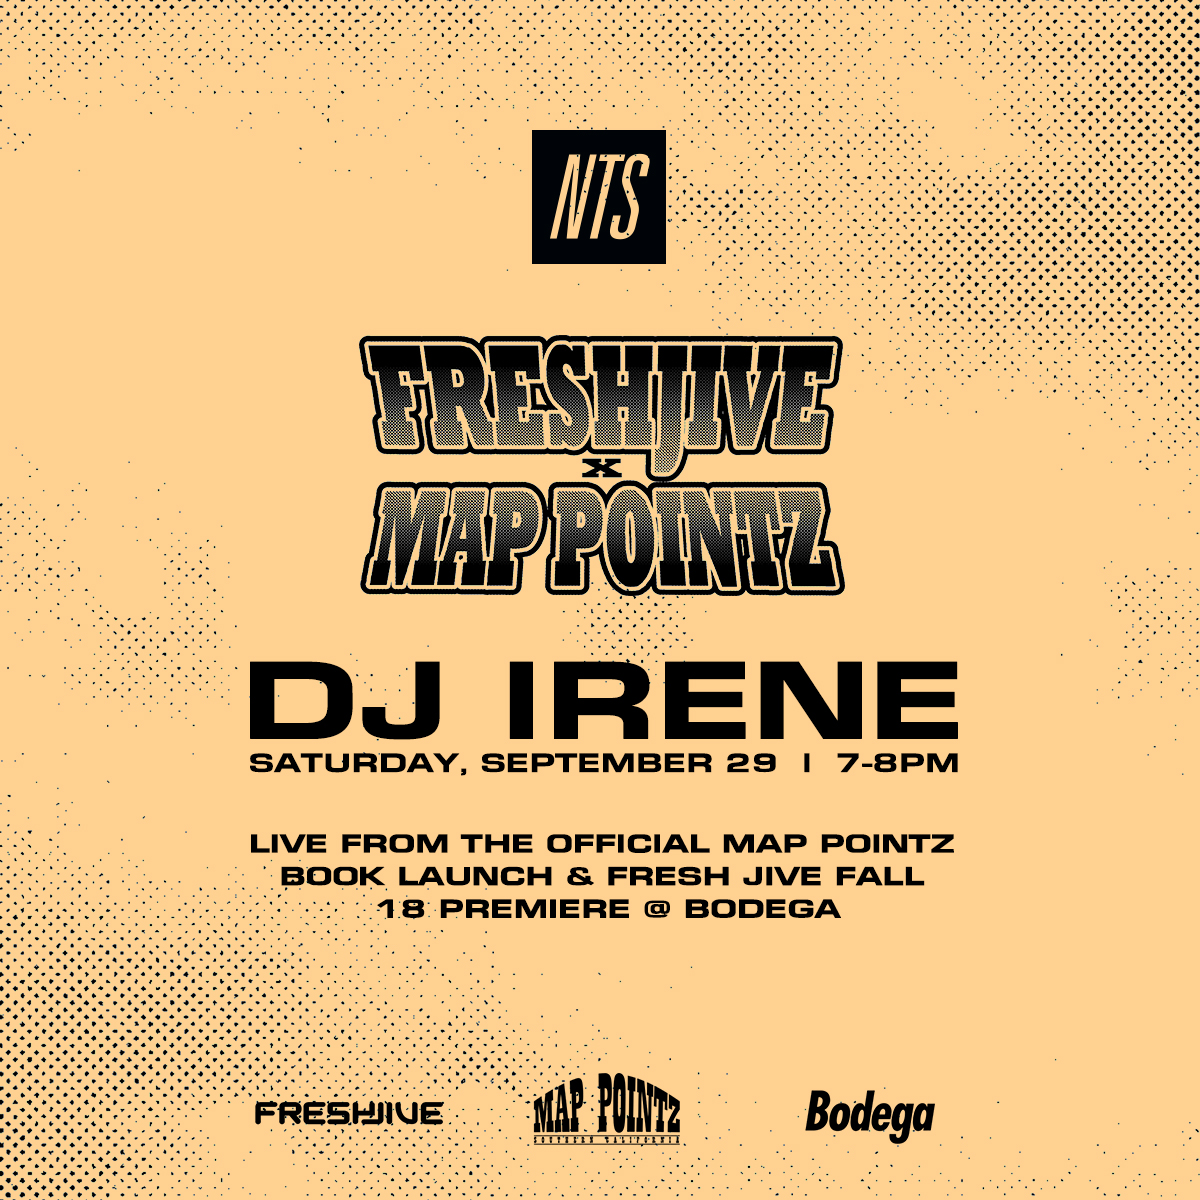 Freshjive-x-Map-Pointz-DJ-Irene-NTS-29.09.18-Artwork.jpg